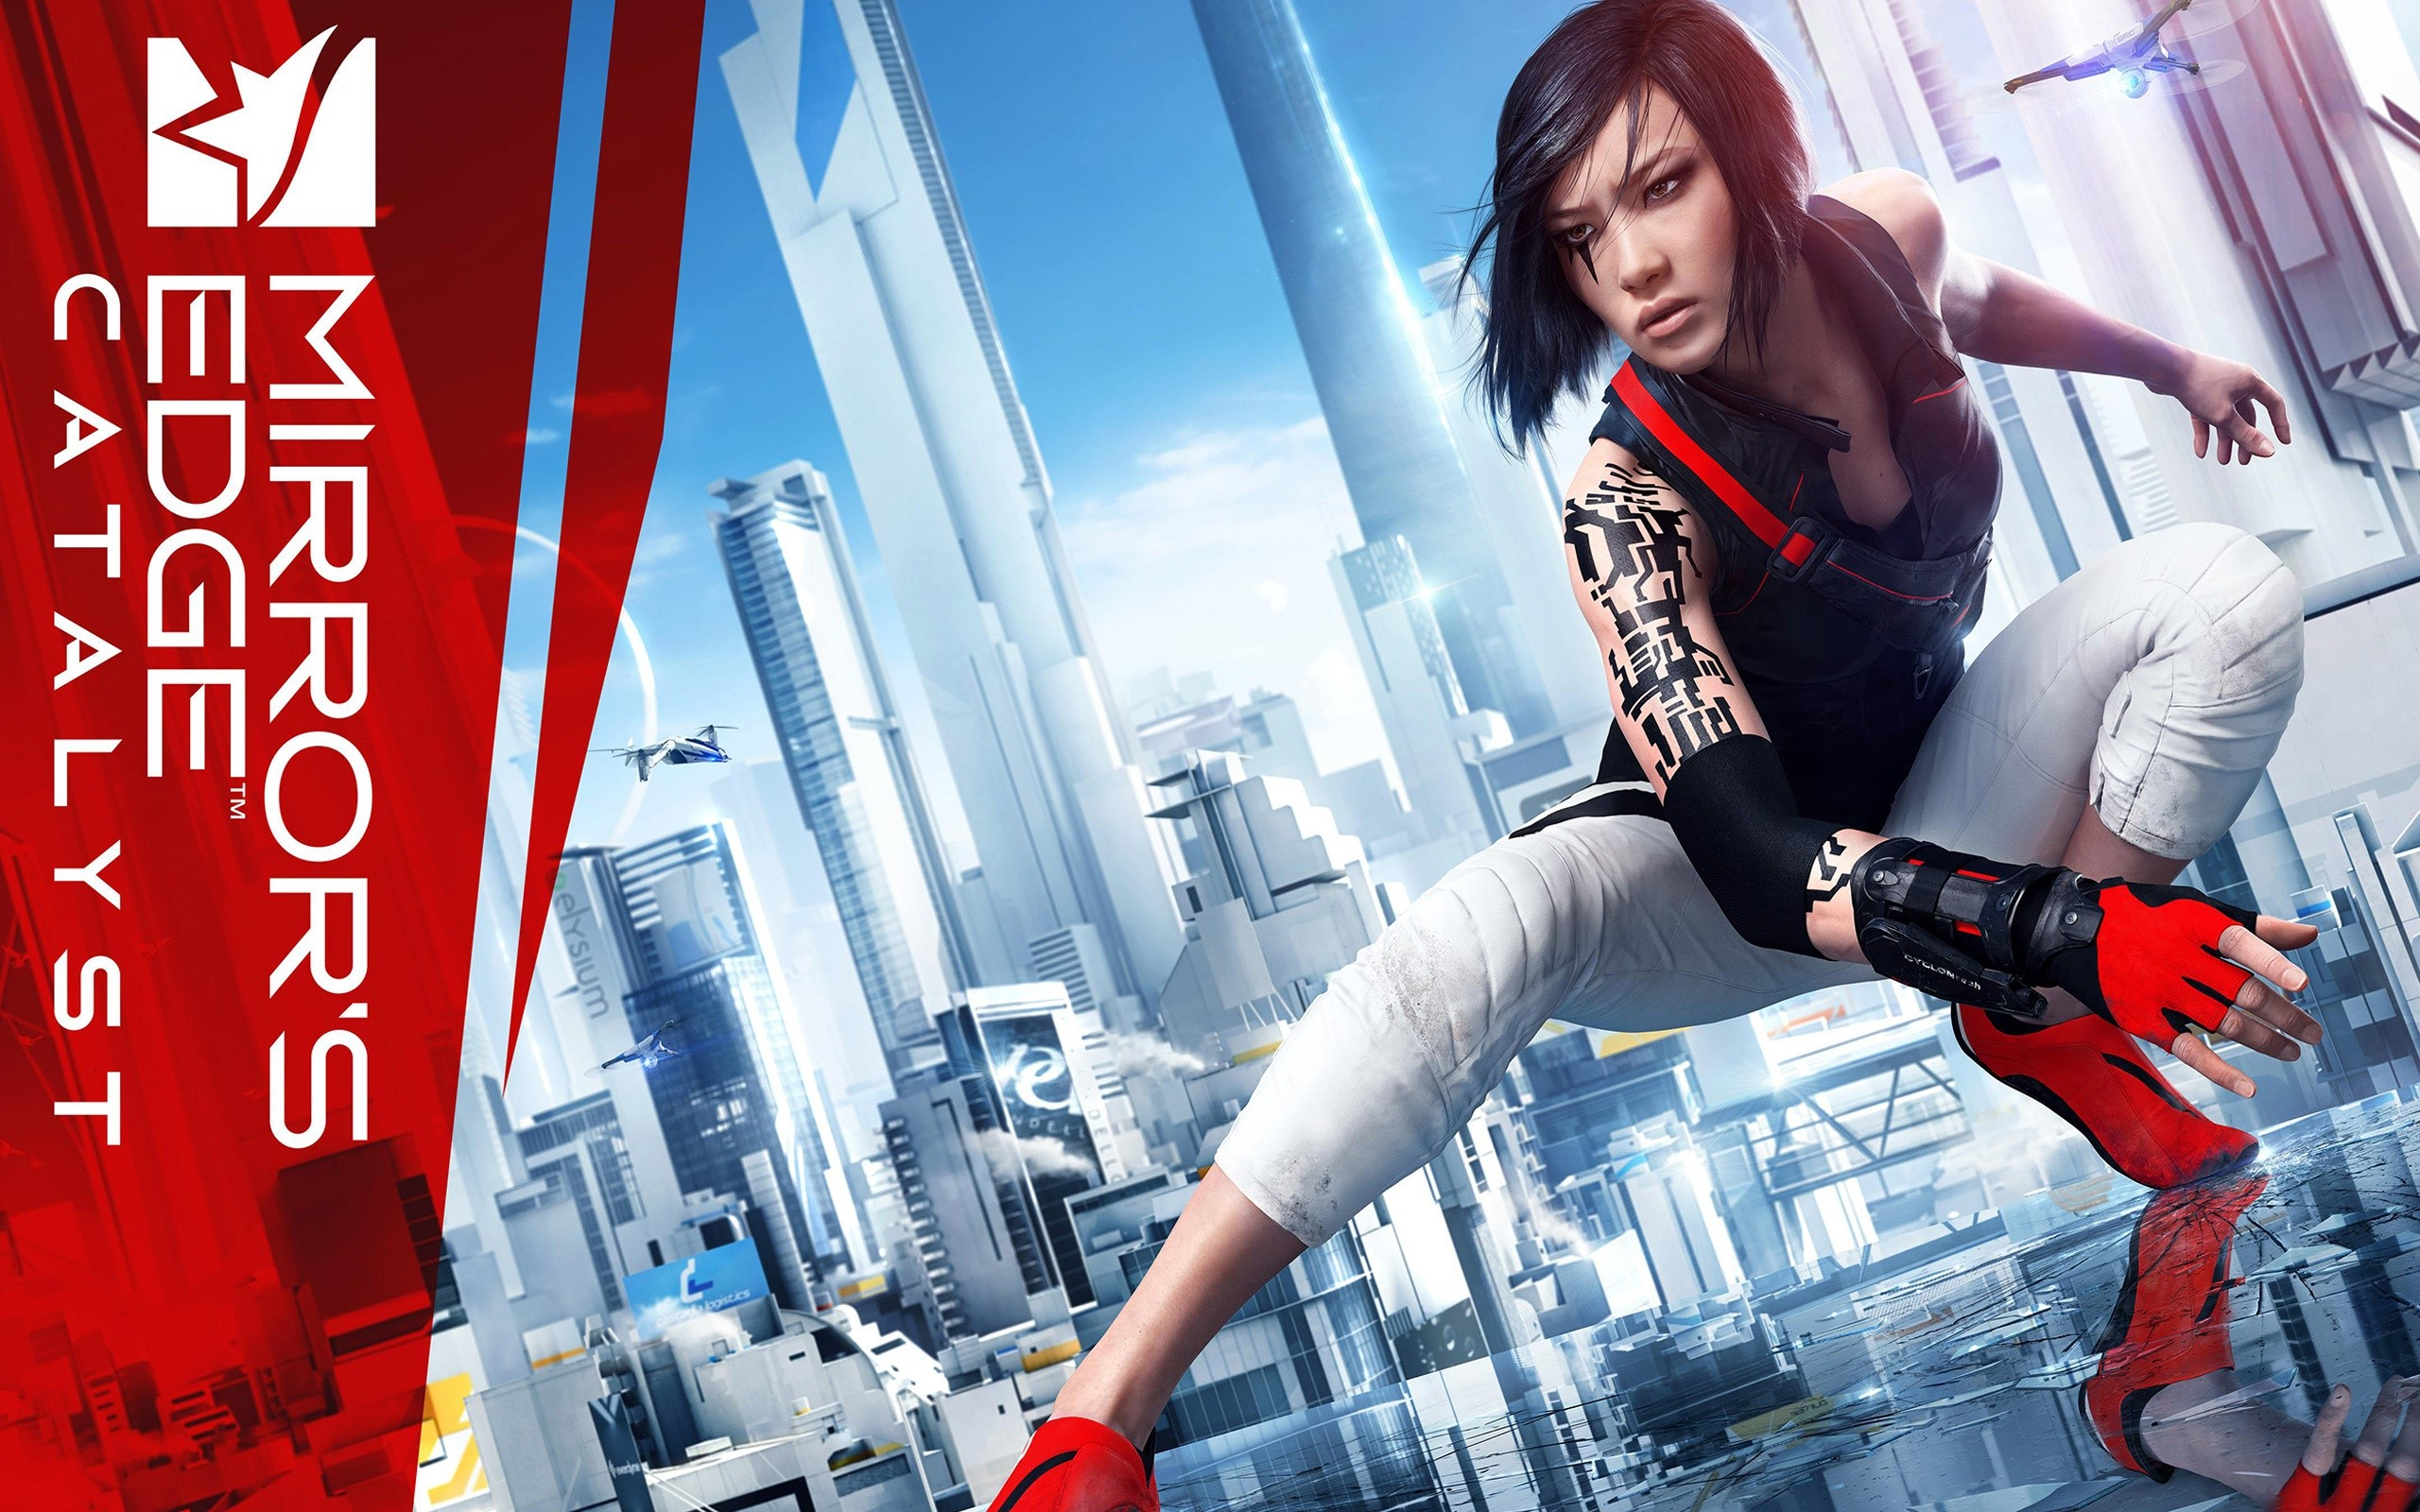 Fondos de pantalla Mirrors Edge Catalyst